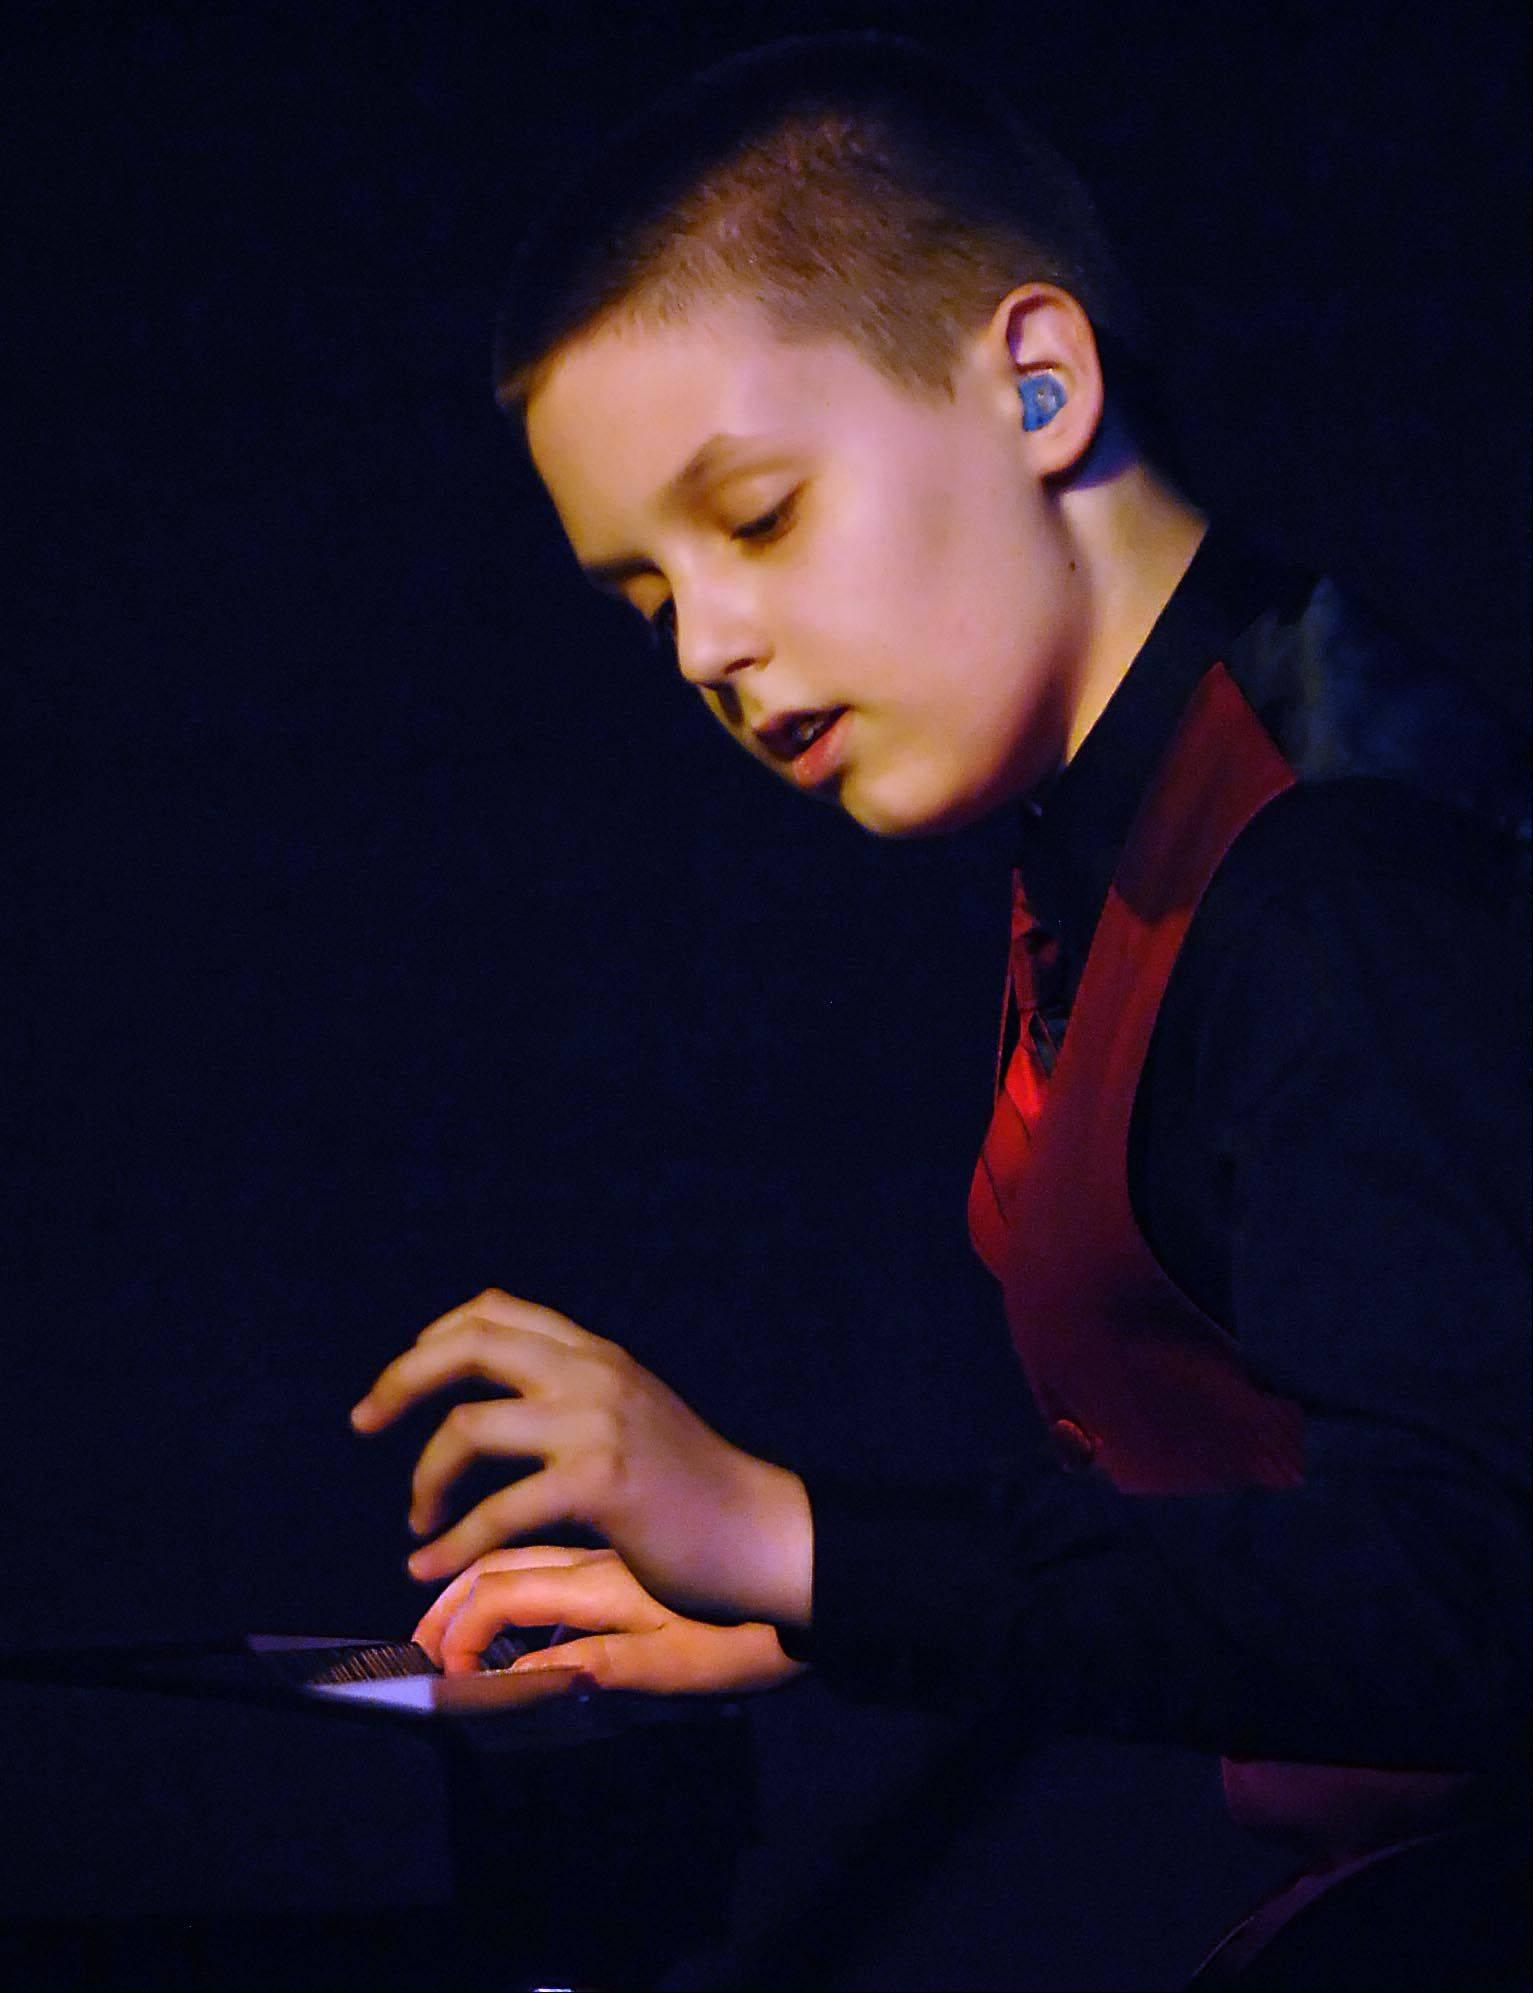 Eleven-year-old Daniel Souvigny of Hampshire performs a piano solo Monday night at the 29th Annual Kane County Fair Talent Contest in the Prairie Events Center at the fairgrounds in St. Charles. He competed in the junior division.